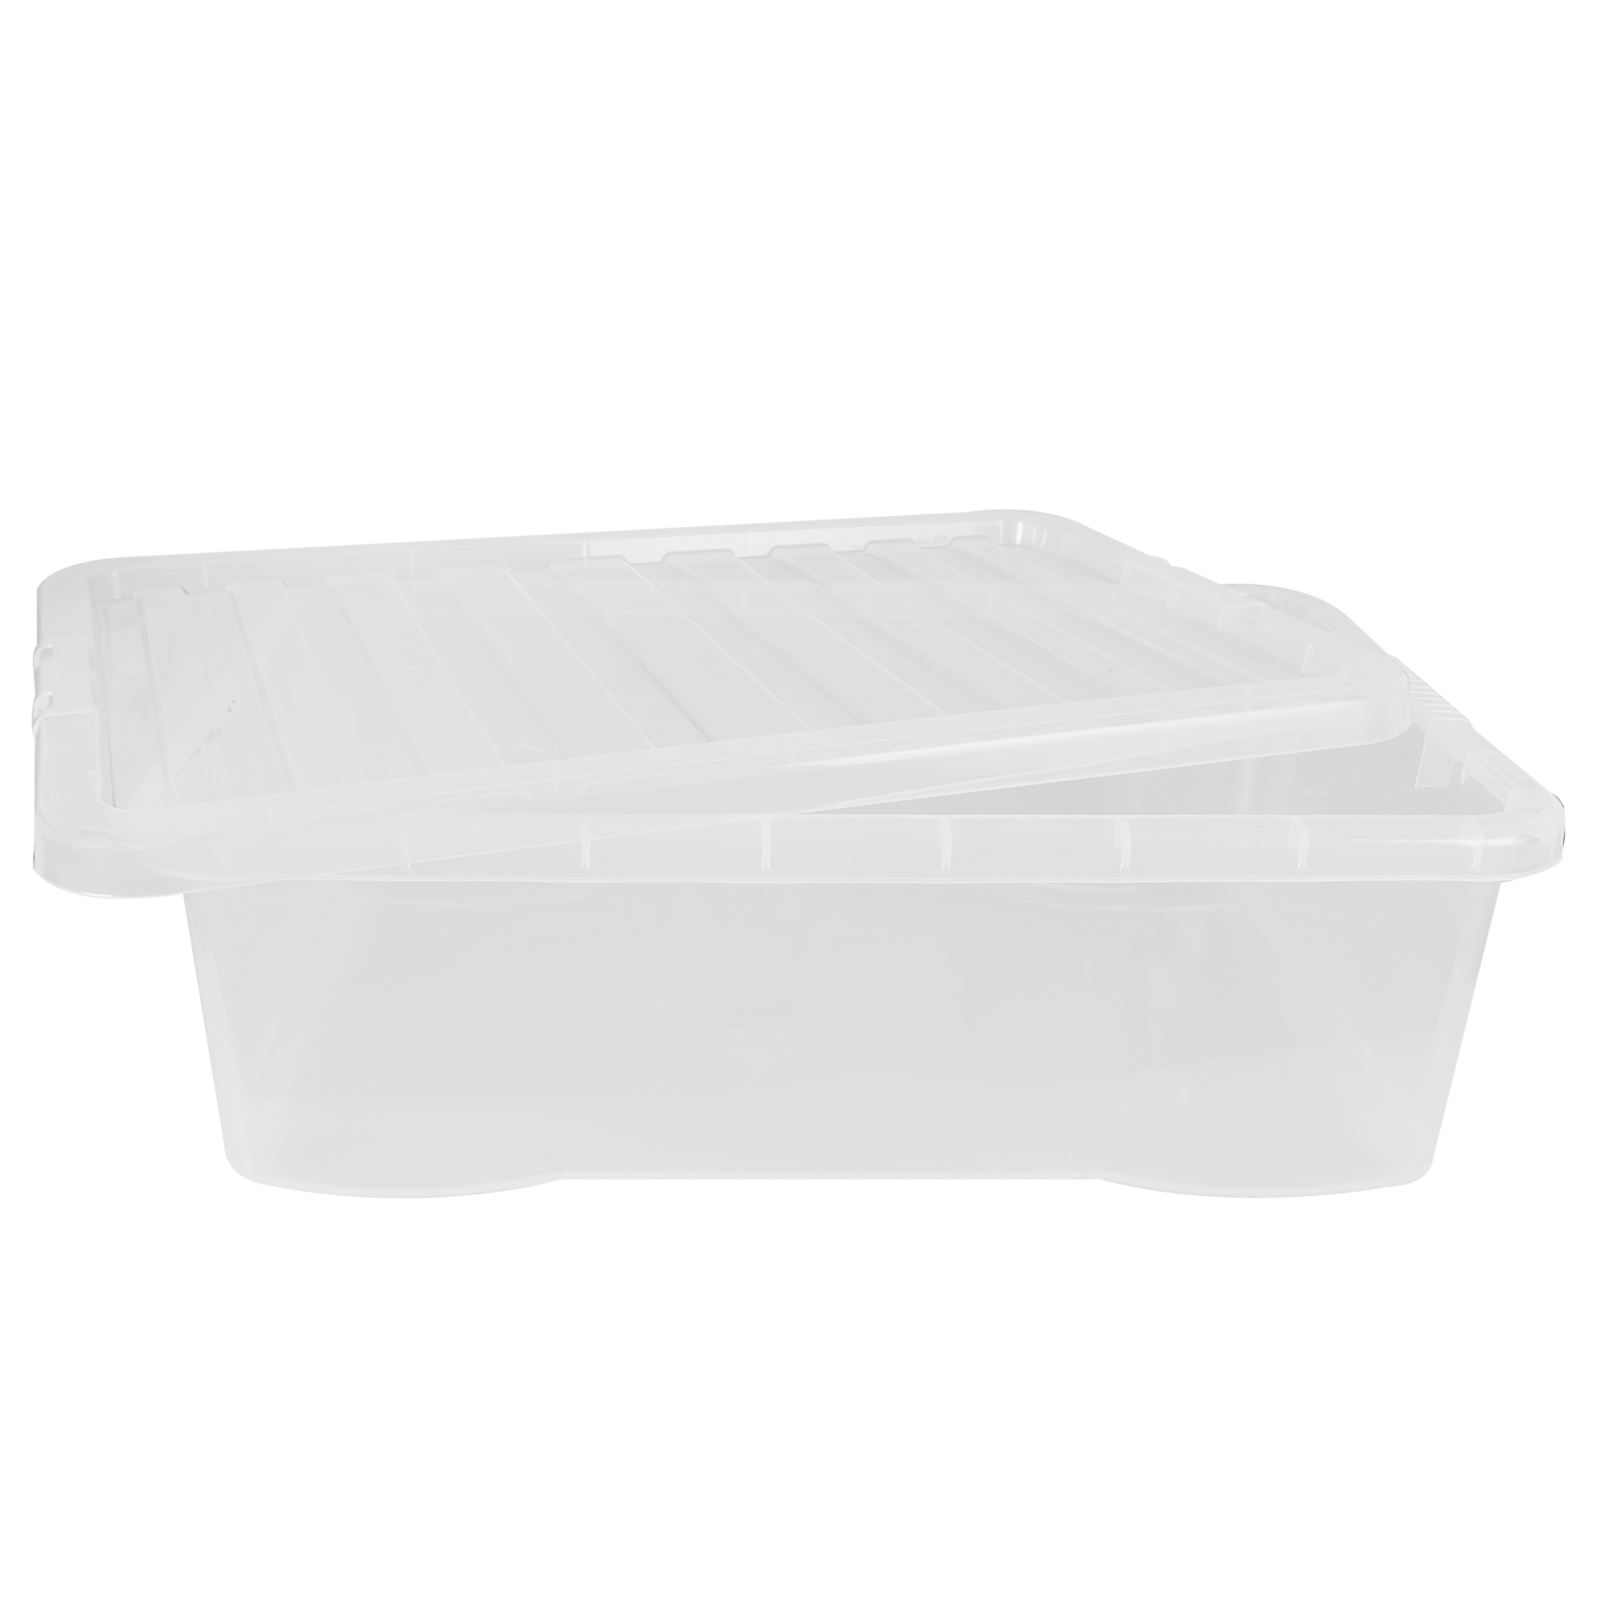 Wham-Crystal-Clear-Plastic-Storage-Box-Secure-Clip-on-Lid-Under-Bed-Space-Save thumbnail 25